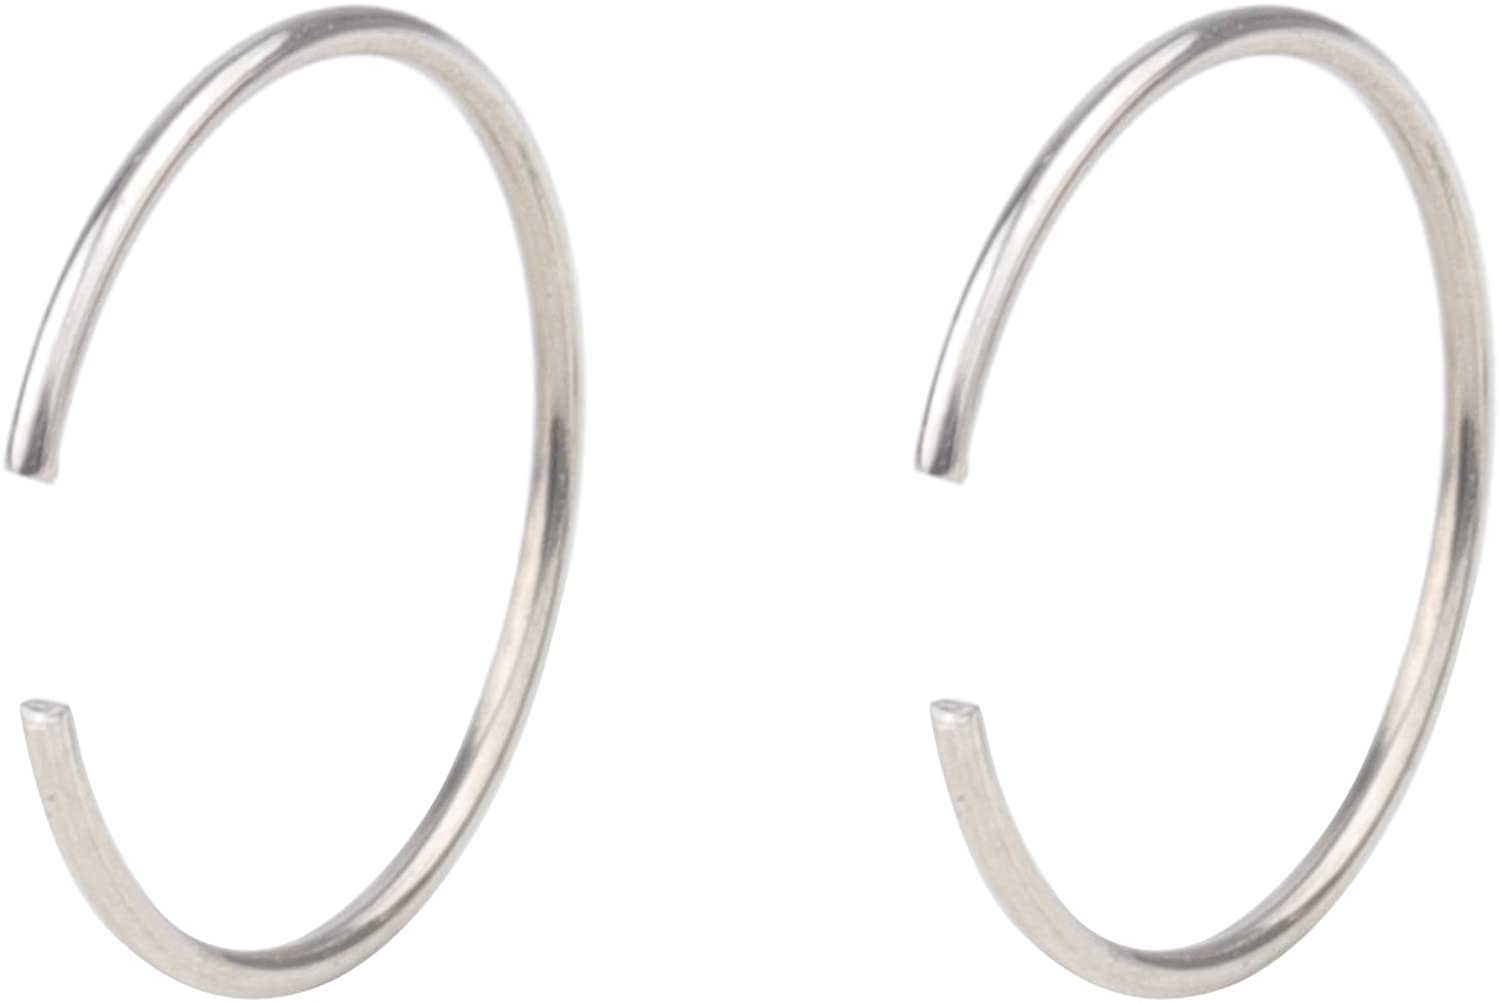 feiyan86 FY 22G 2-8pcs Surgical Steel Body Jewelry Piercing Nose Ring Hoop Nose Piercing 10mm